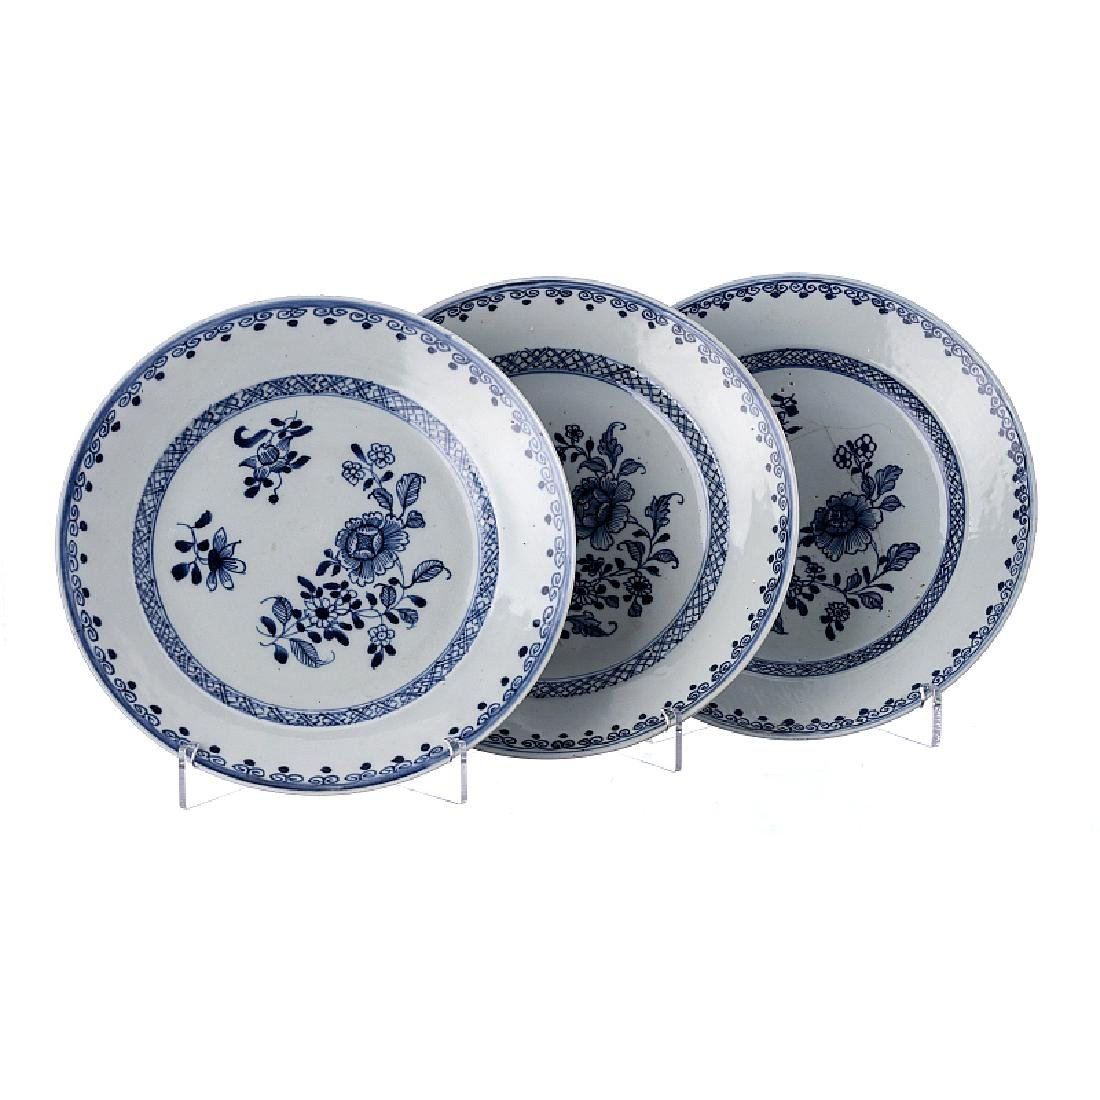 Three plates with 'flowers' in porcelain from China